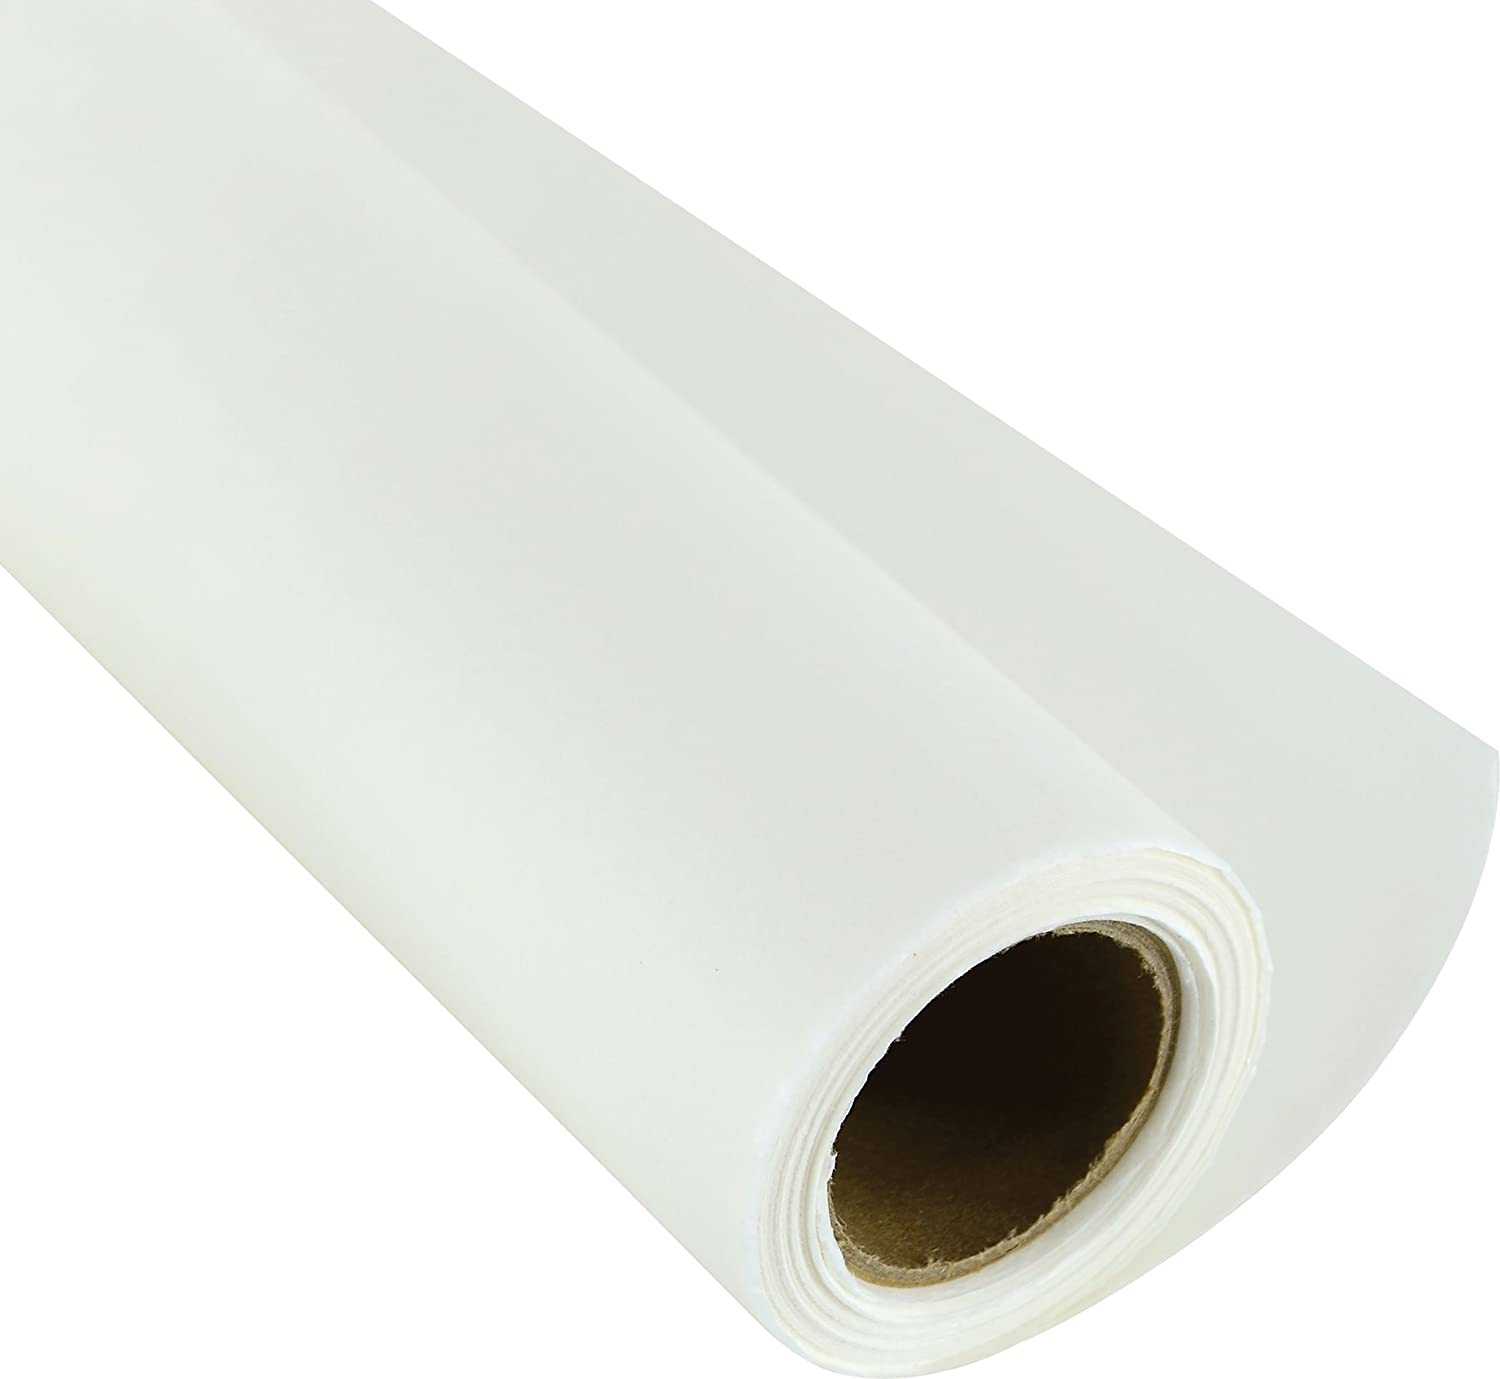 Bee Paper White Sketch and Trace Roll, 24-Inch by 20-Yards 515R-2024